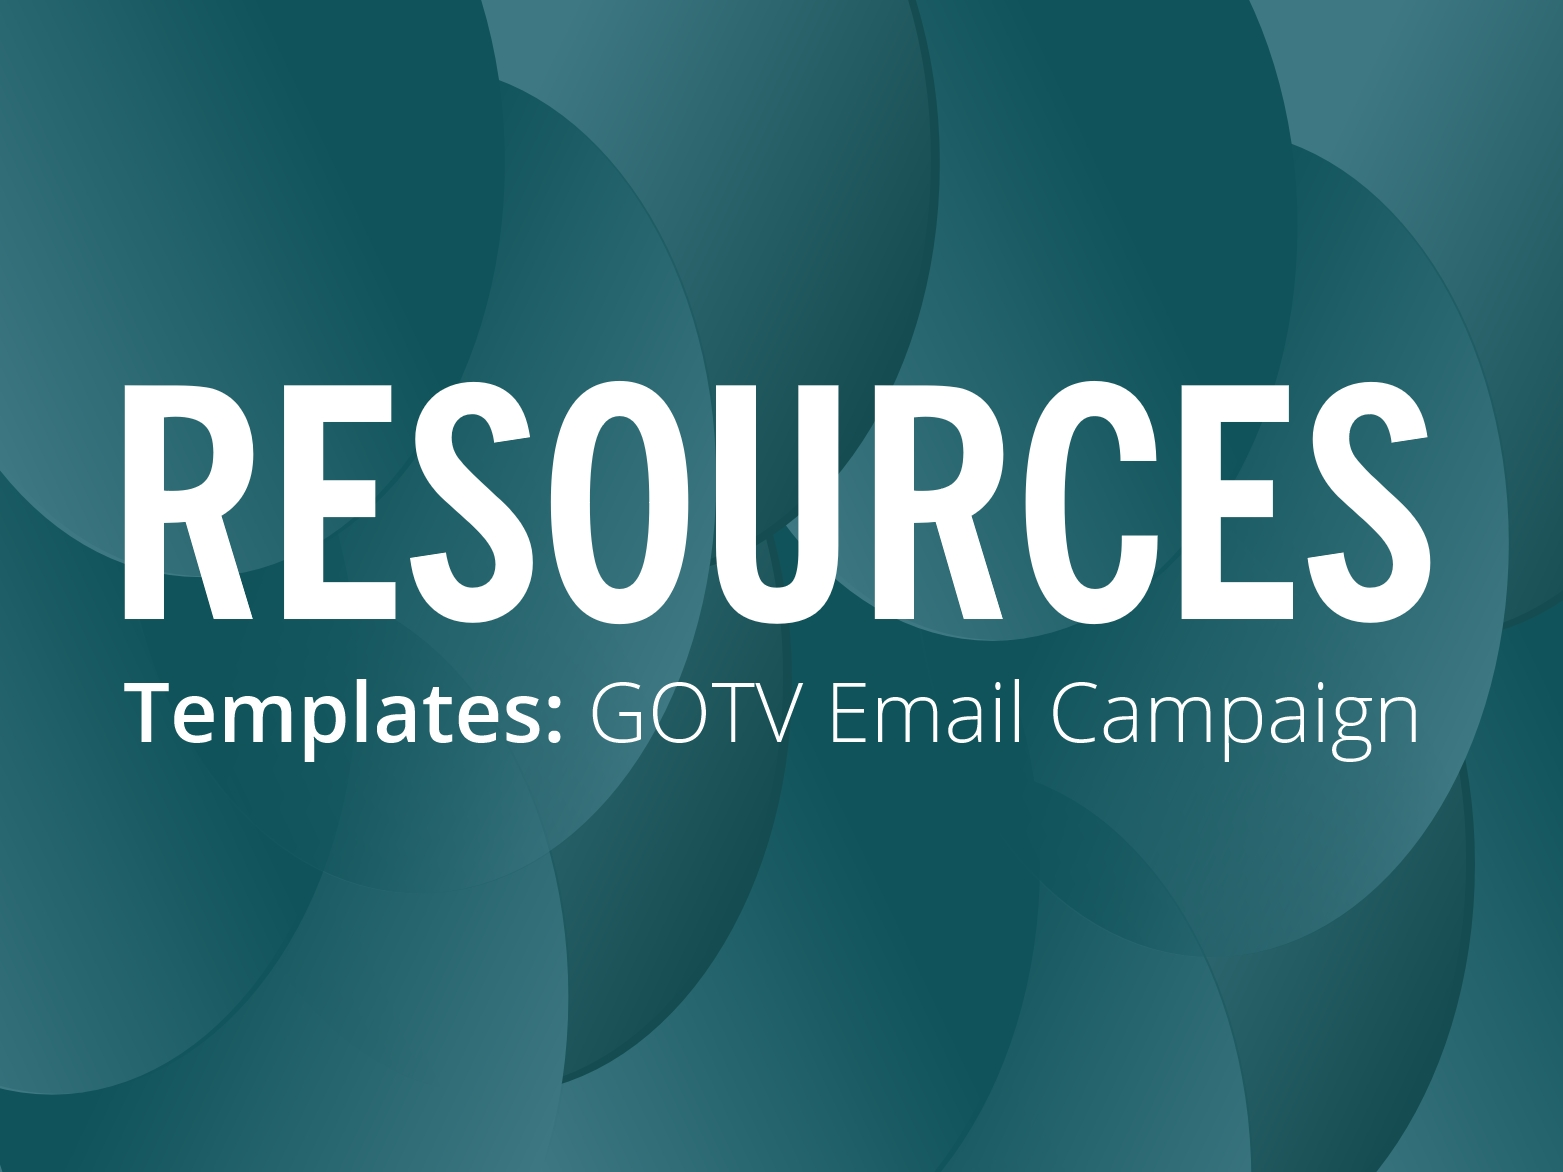 RESOURCES: Planning your get out the vote email campaign